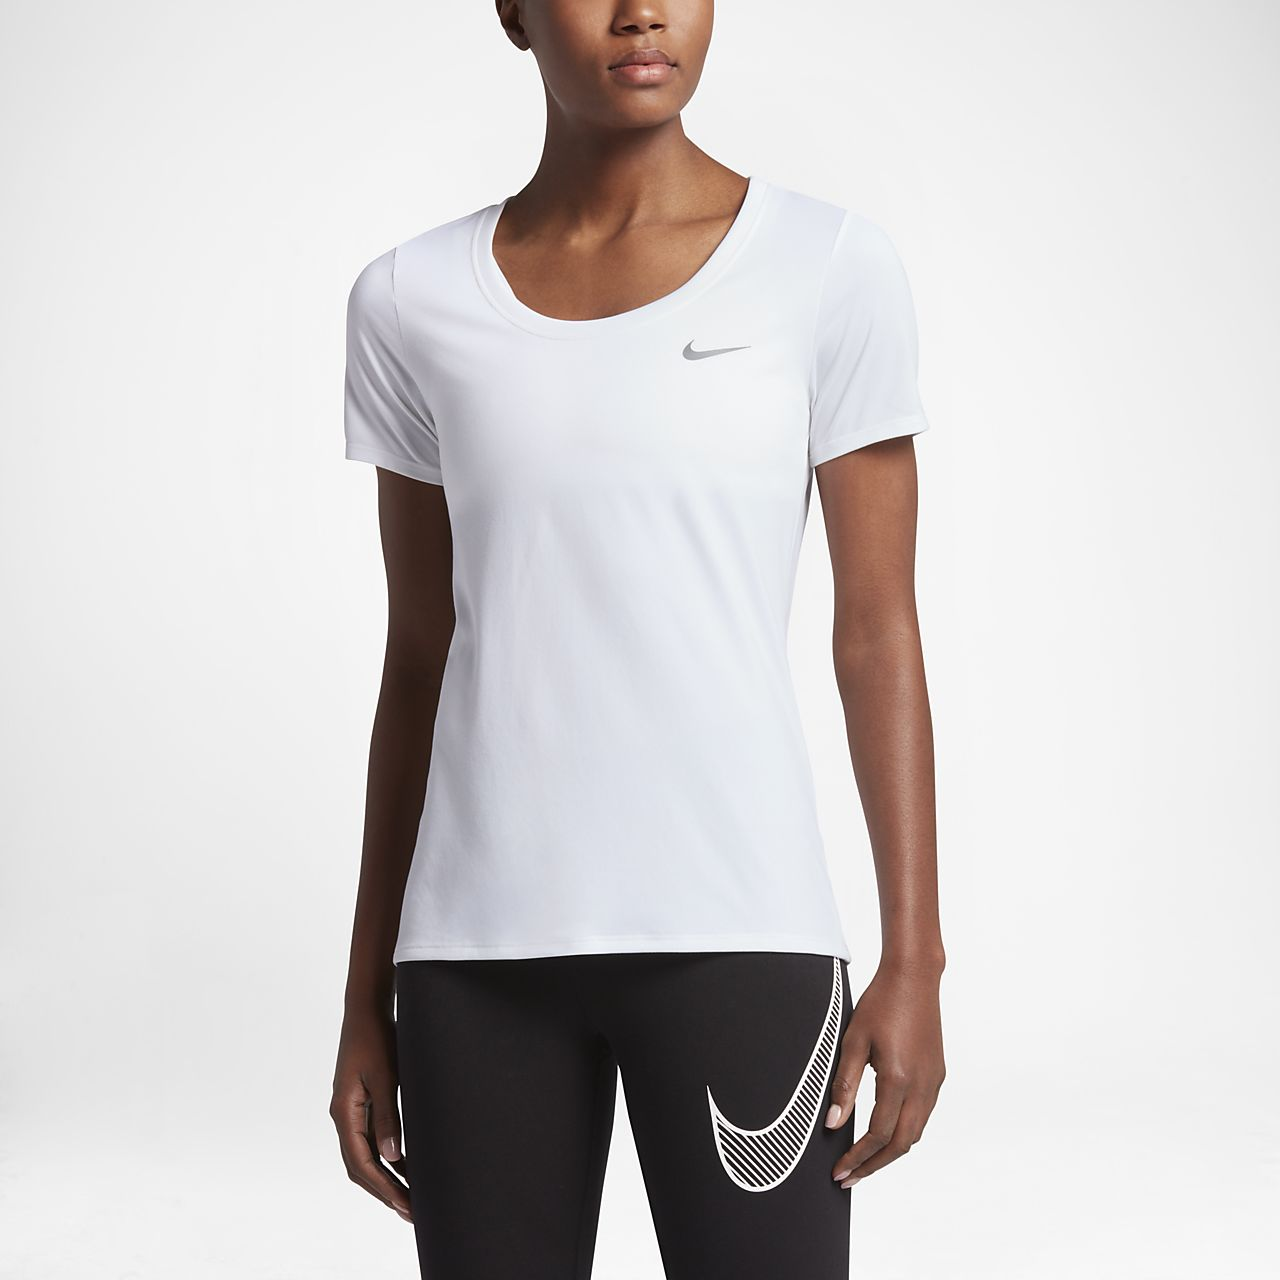 39f84c7905c Nike Dri-FIT Women s Training T-Shirt. Nike.com